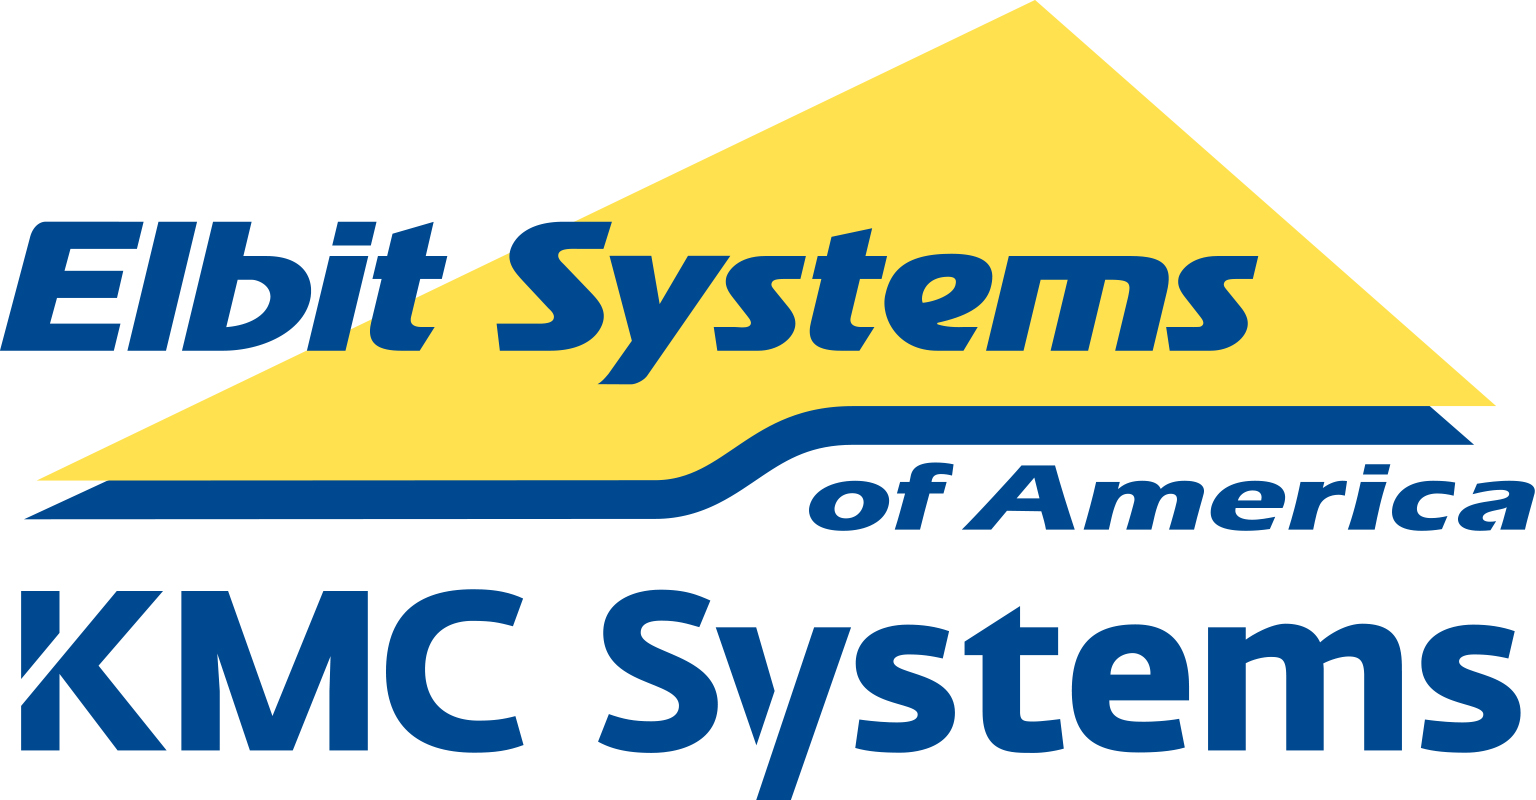 ESA-KMC-Systems-New-logo-2